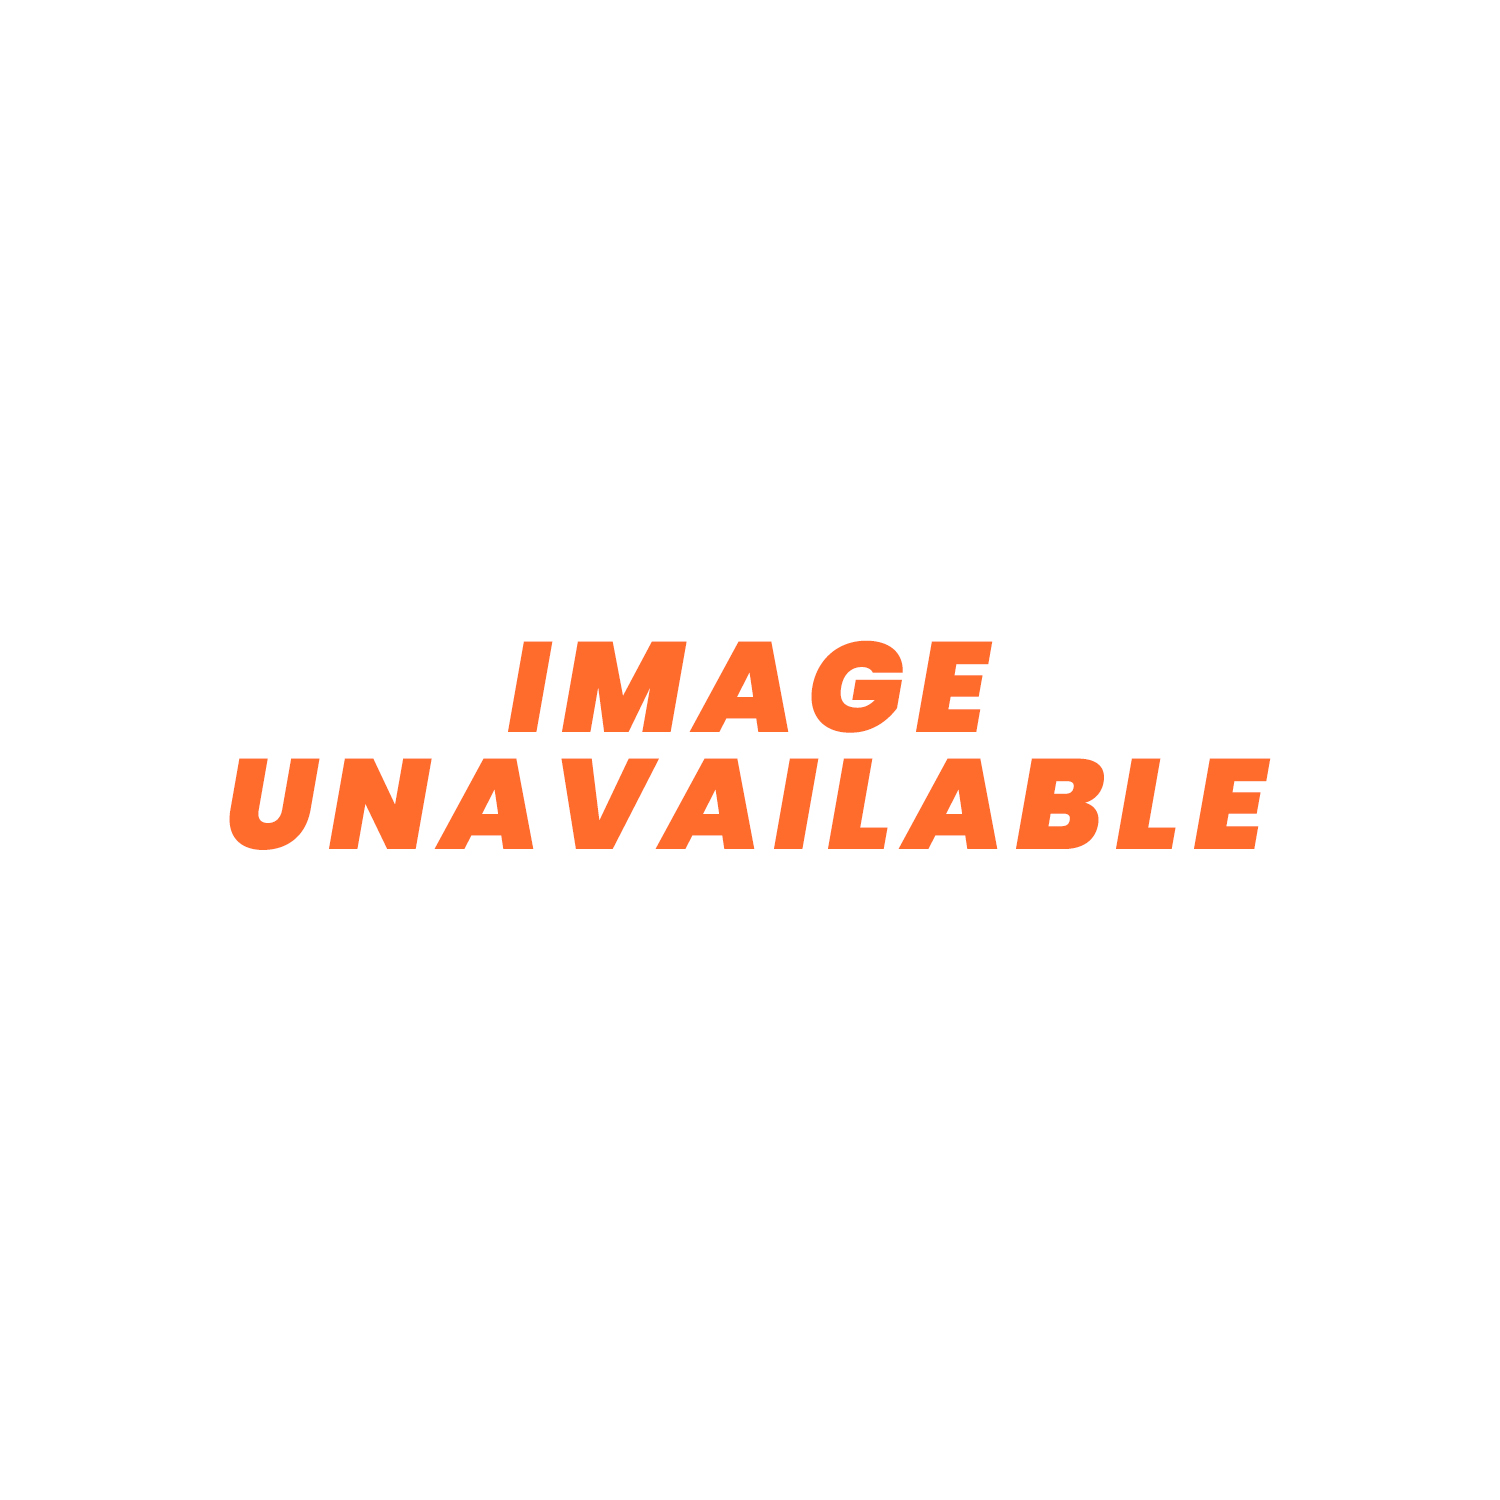 Jubilee 'O' Clip 304 Stainless Steel 11 - 13mm Dia Hose Clamp